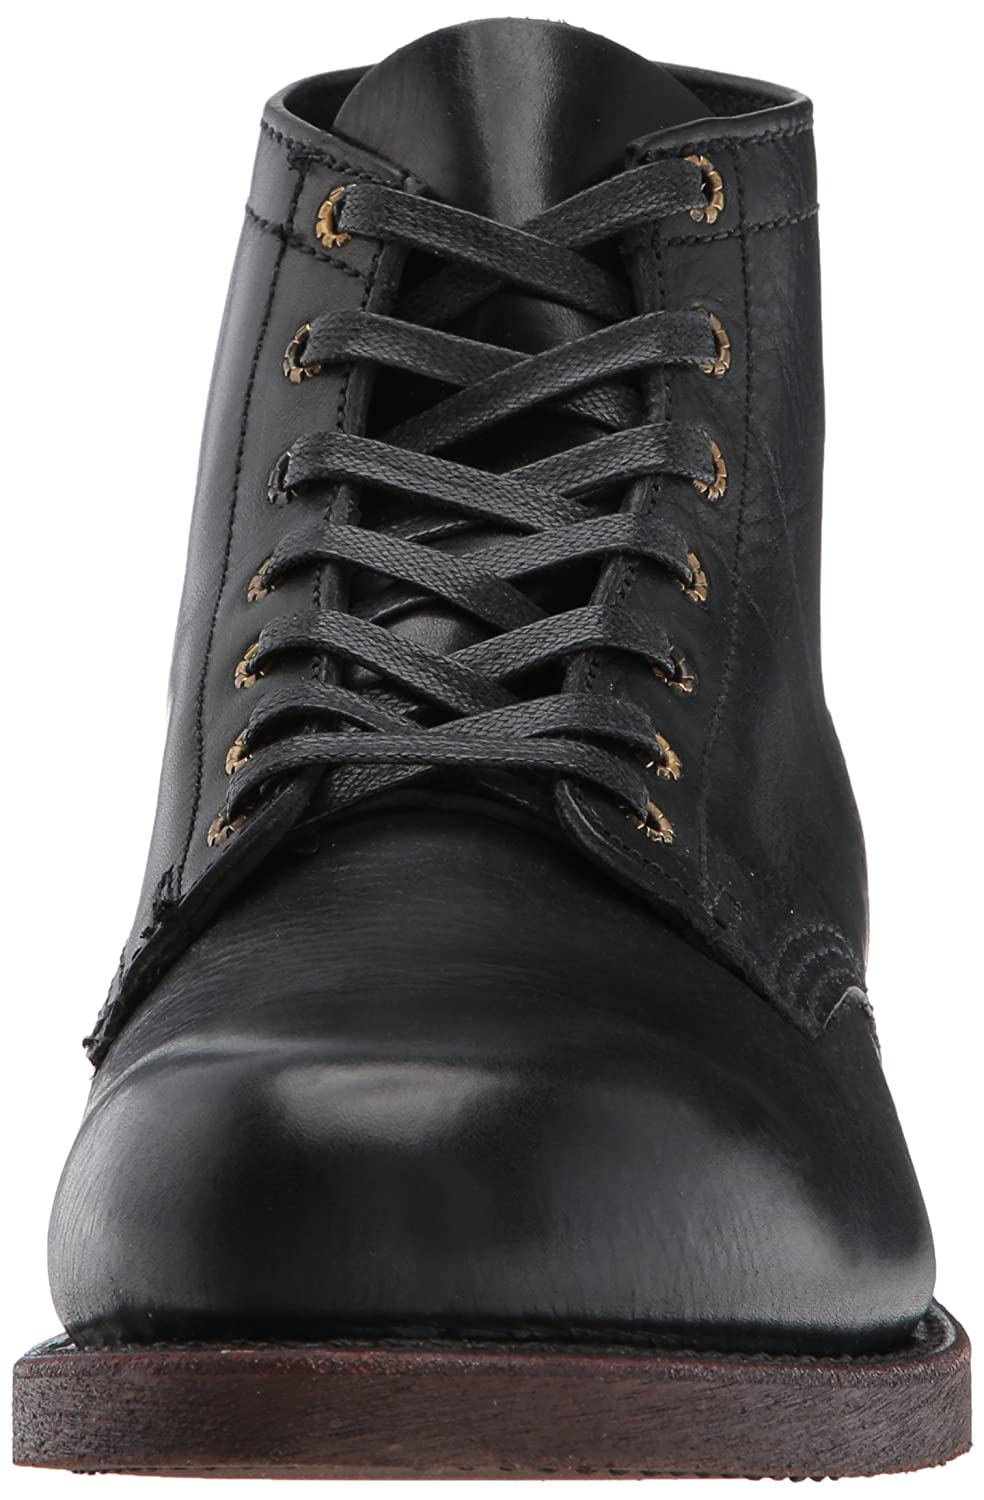 62aae875 Amazon.com: FRYE Men's Prison Combat Boot: Shoes